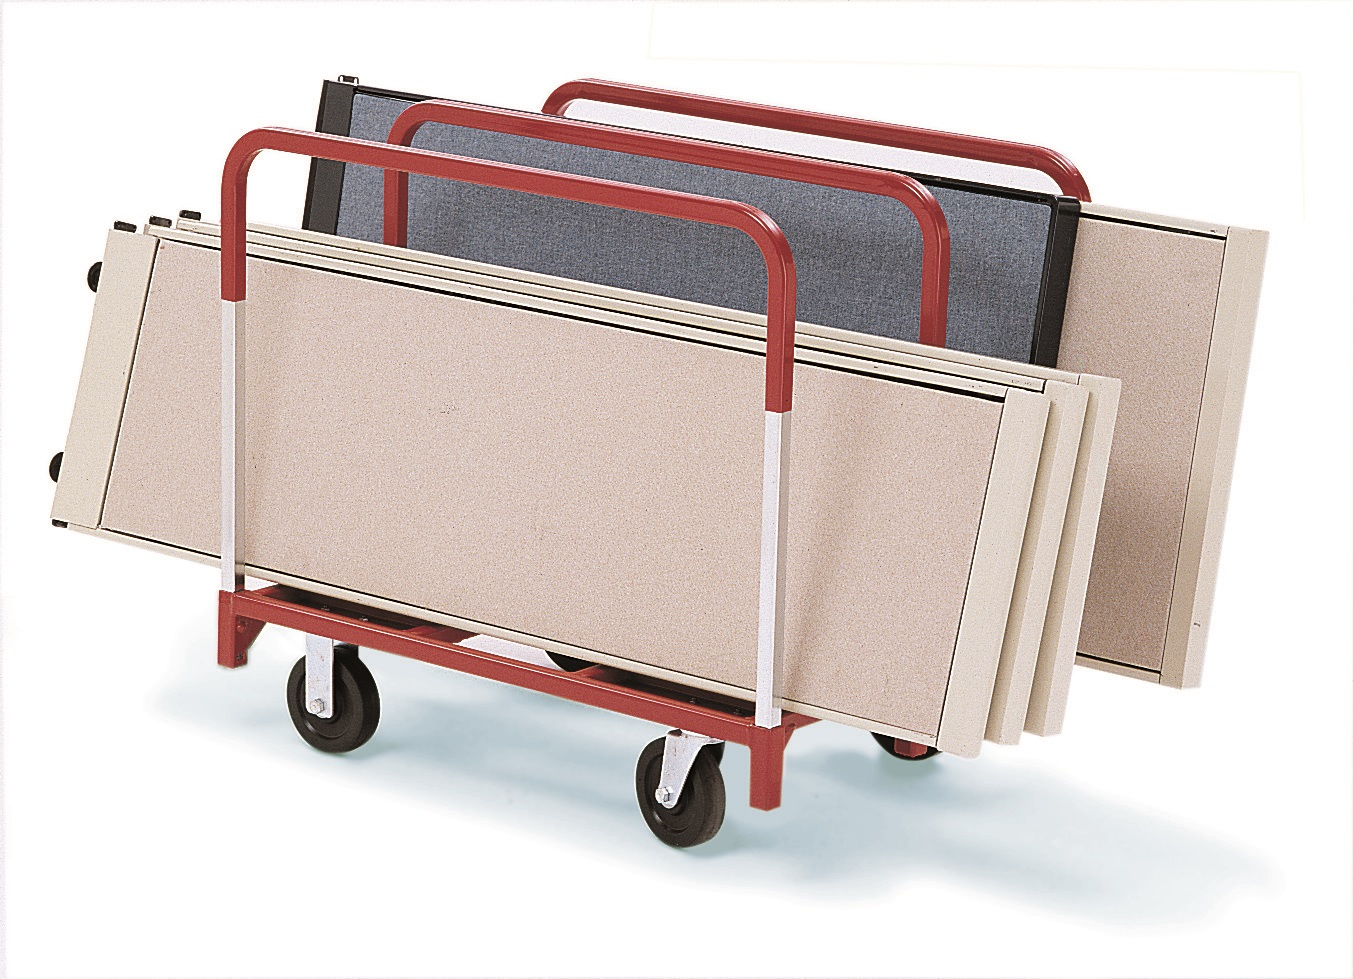 Panel Mover 3825 and Panels